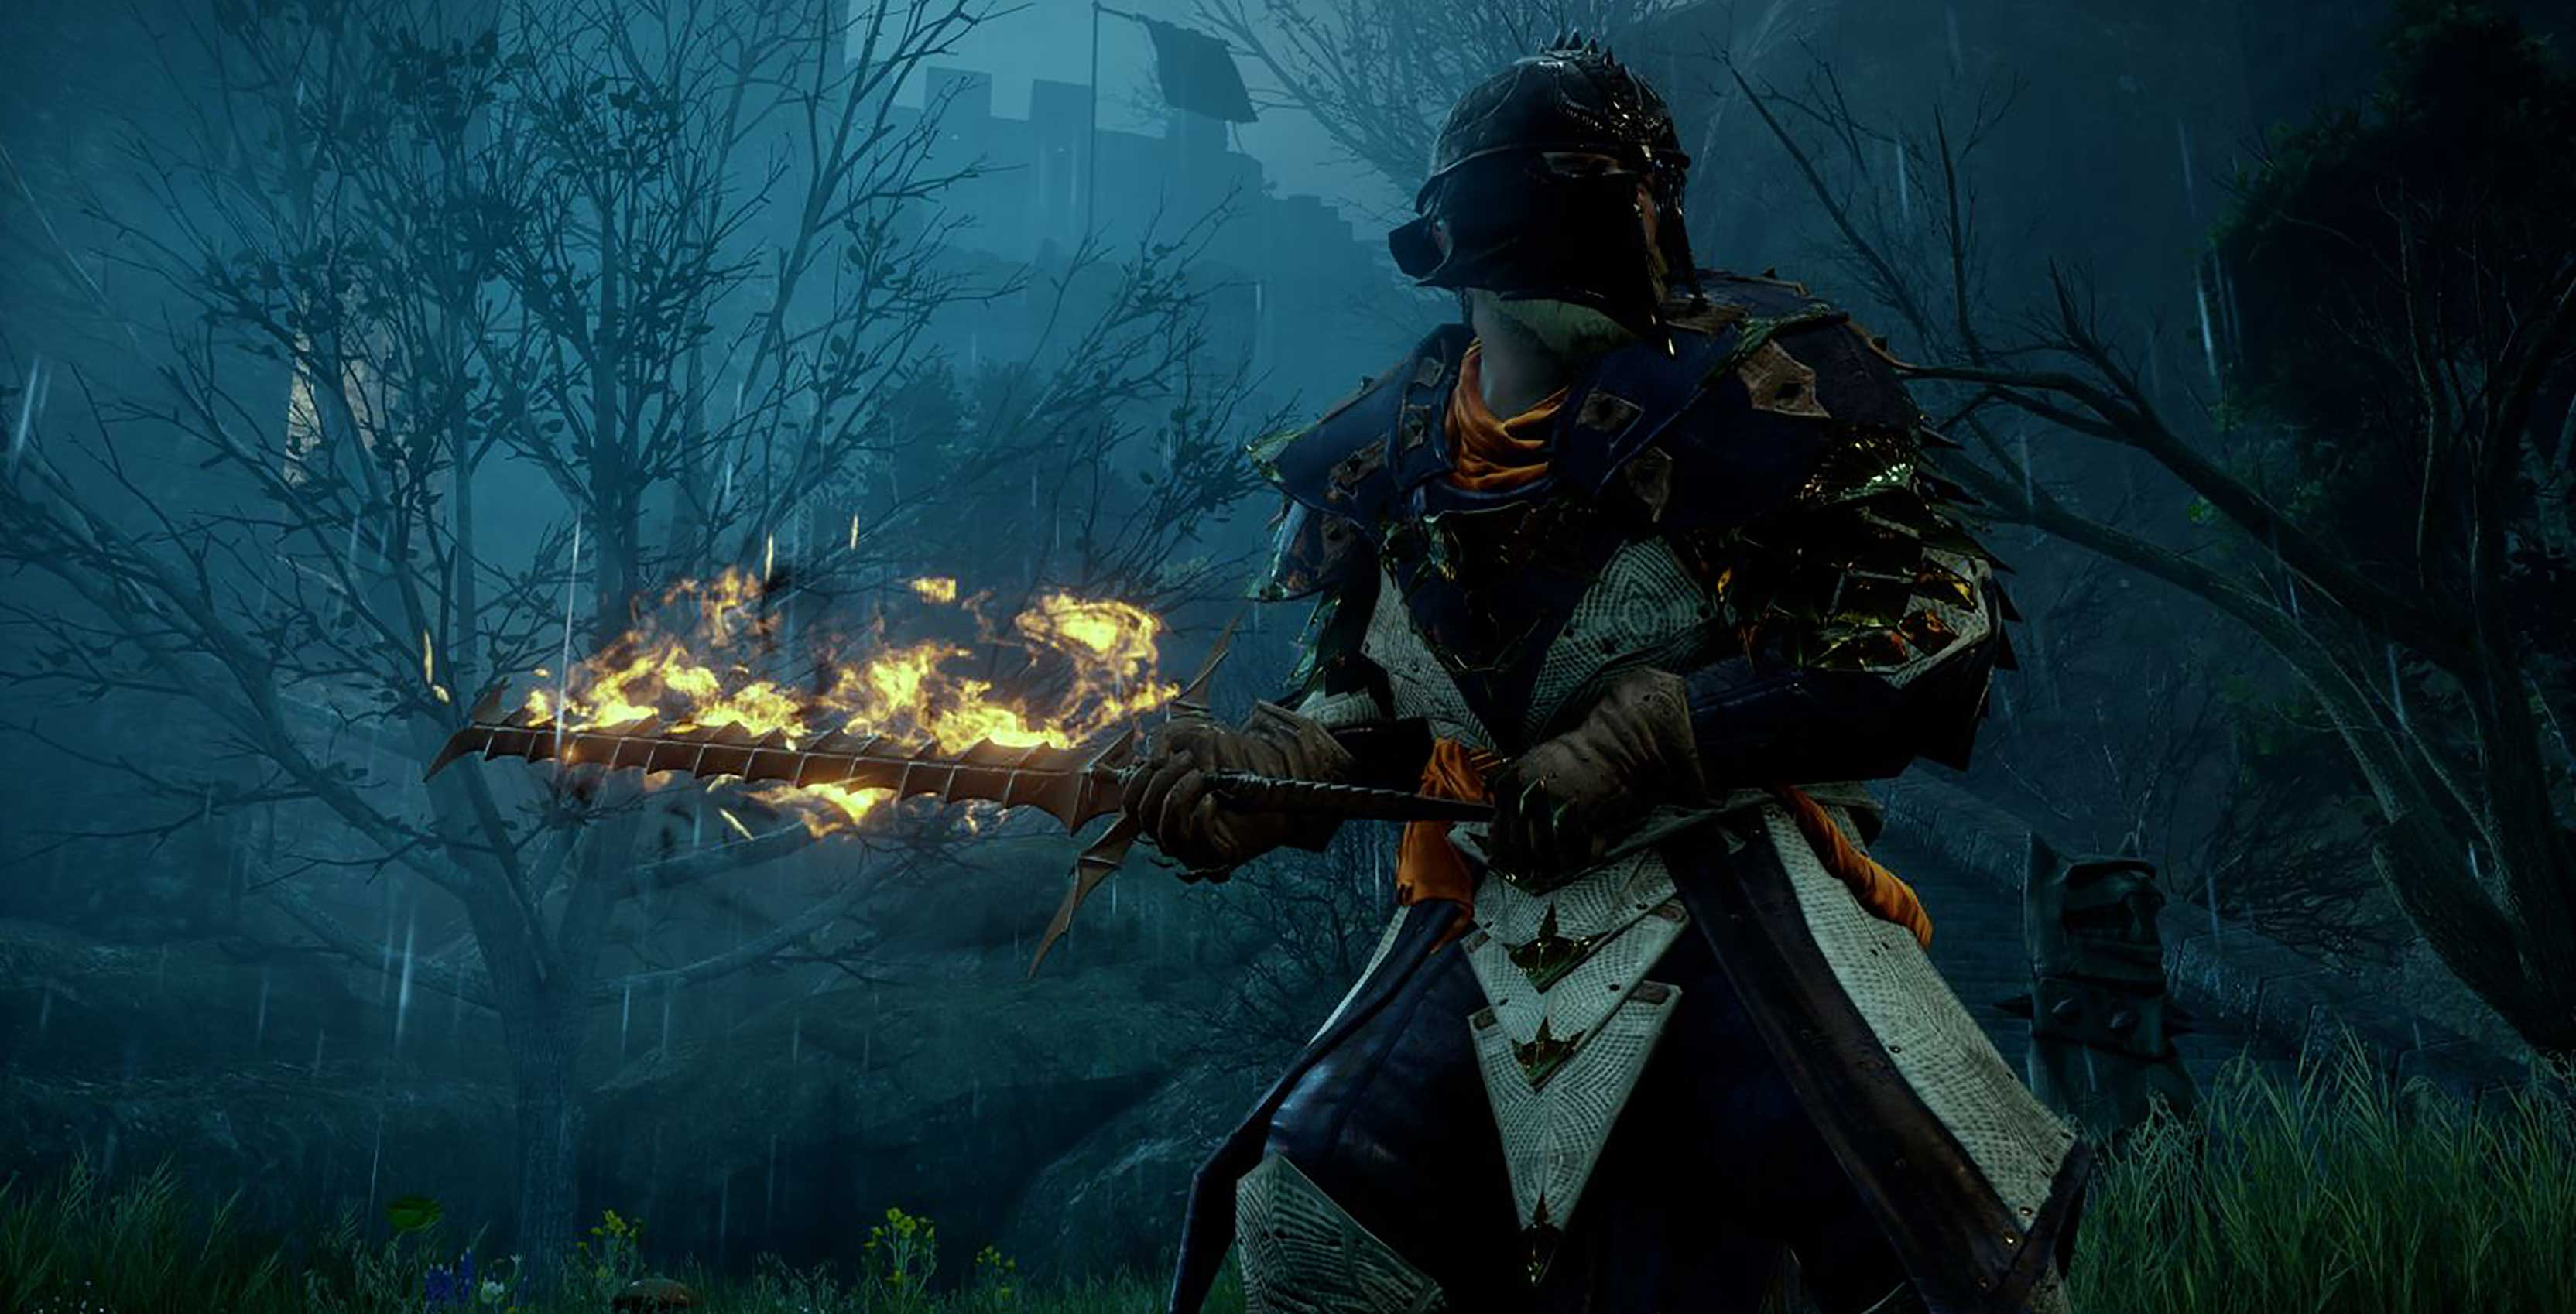 BioWare Teases Dragon Age Announcement Next Month